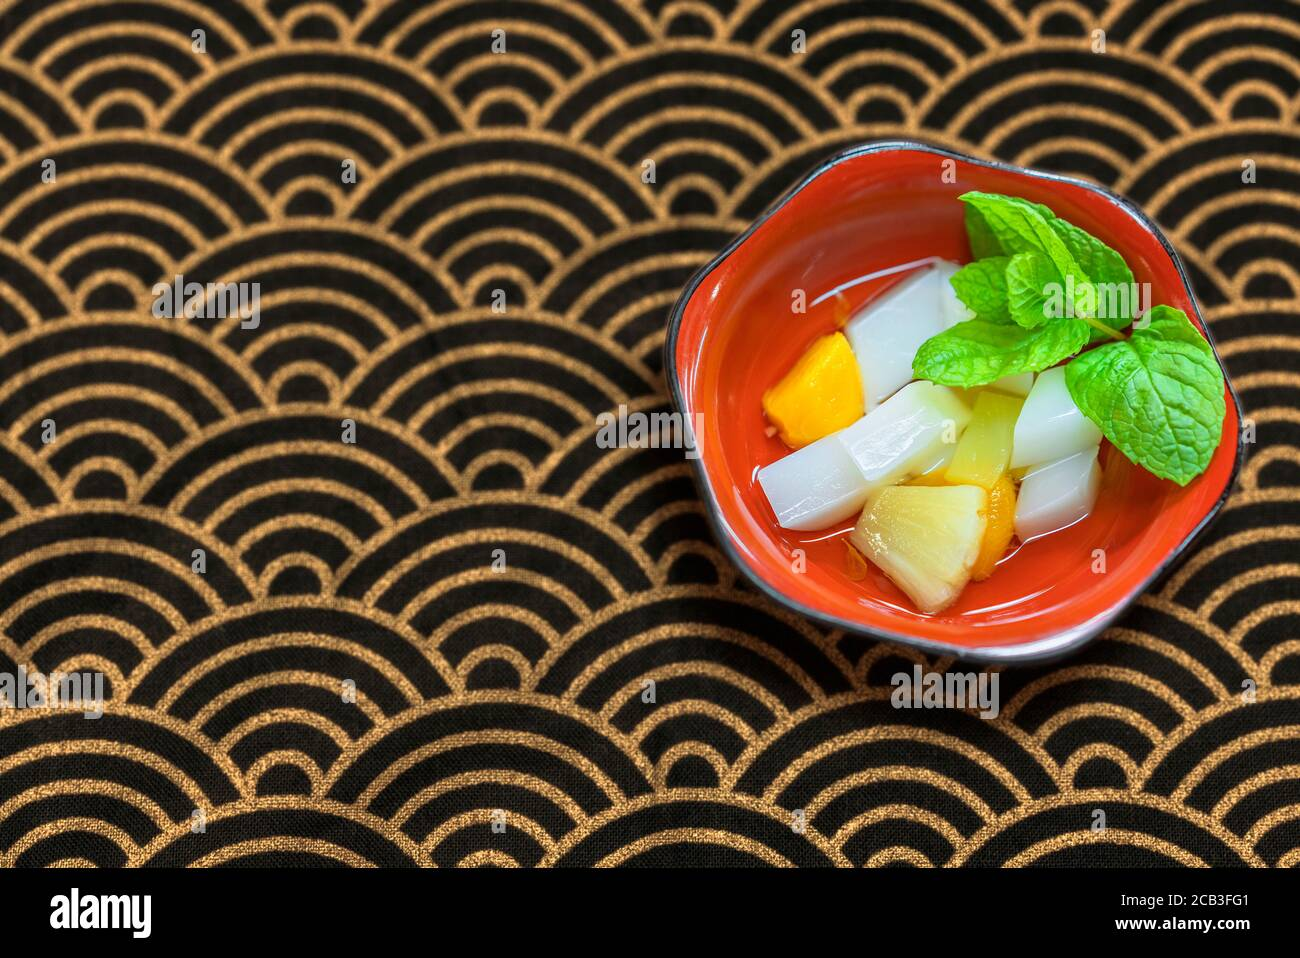 Japanese traditional dessert of Annin tofu or almond tofu made of apricot kernel milk, agar, and sugar with fruits pieces like pineapples and apricot Stock Photo